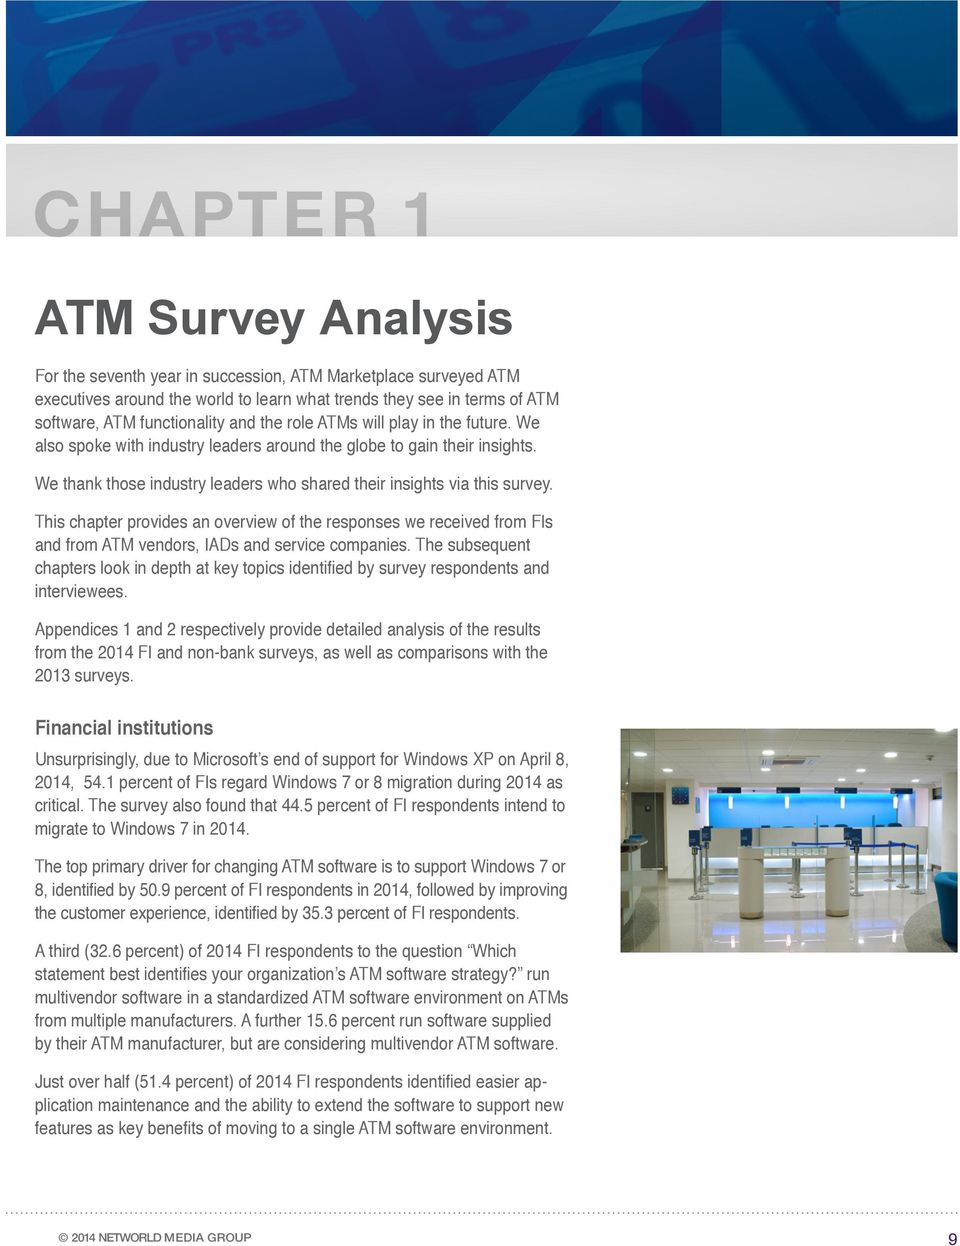 This chapter provides an overview of the responses we received from FIs and from ATM vendors, IADs and service companies.